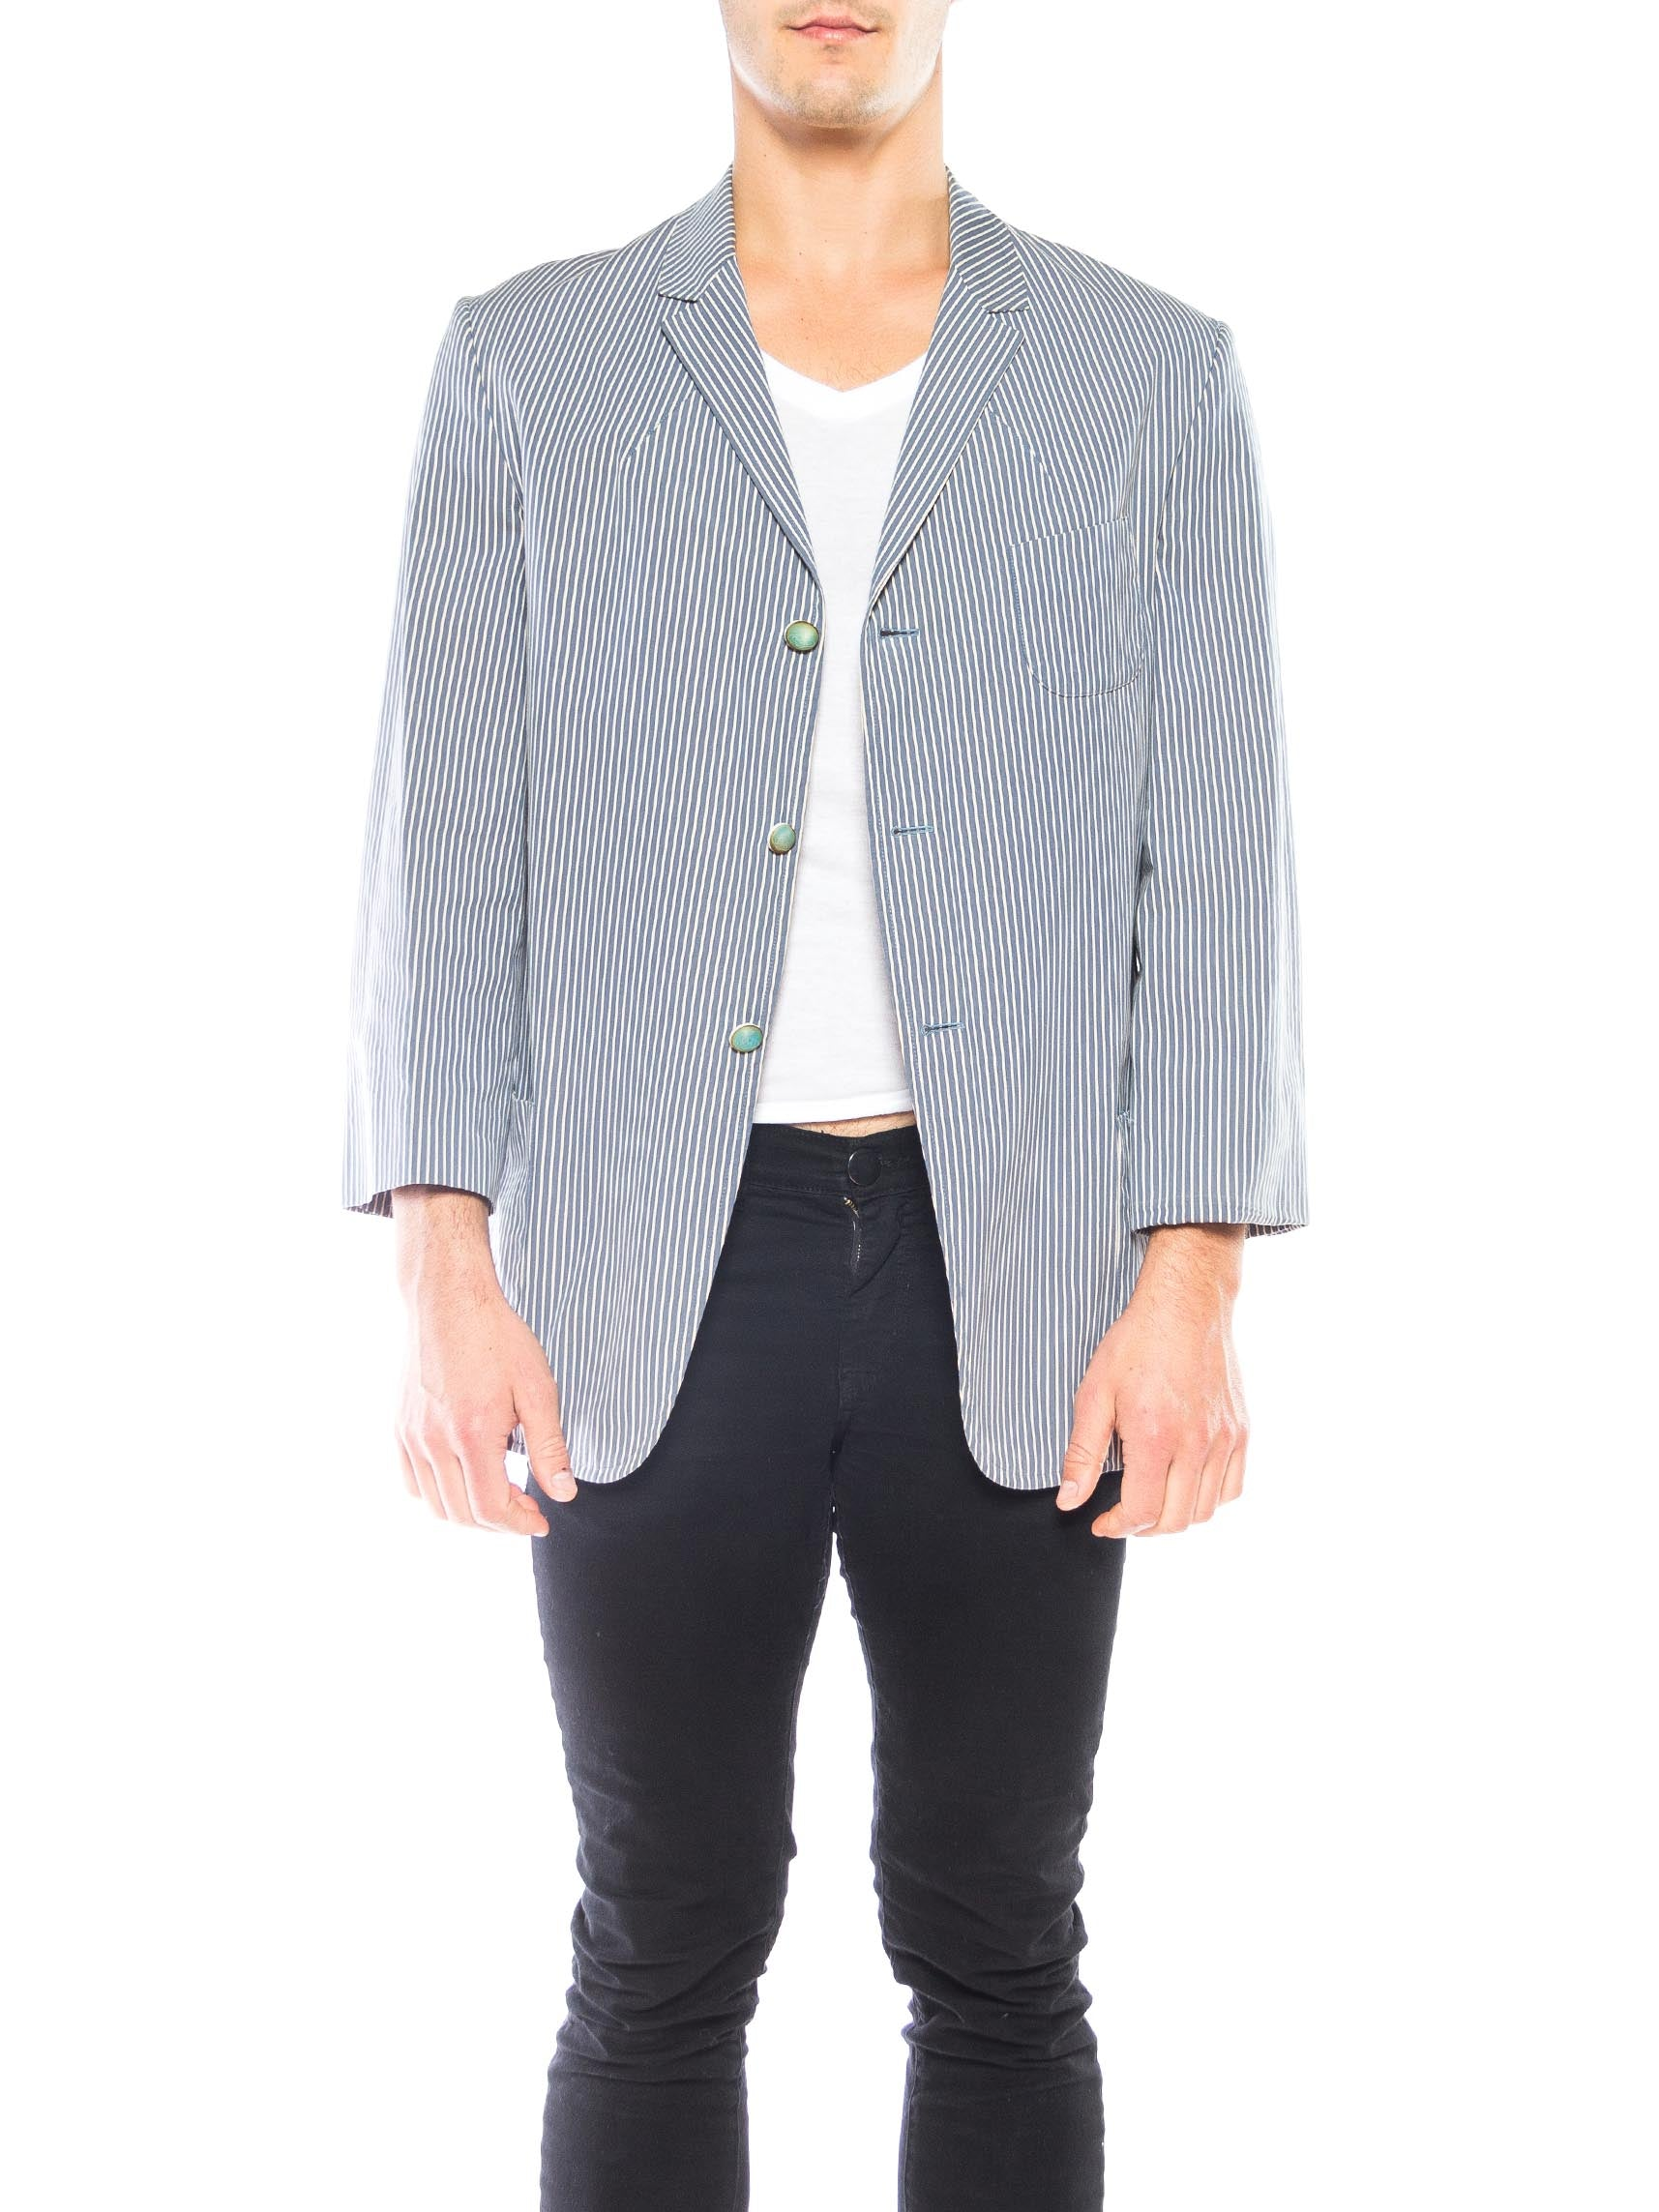 1990S Vivienne Westwood Blue & White Cotton Seersucker Men's Gatsby Style Blazer